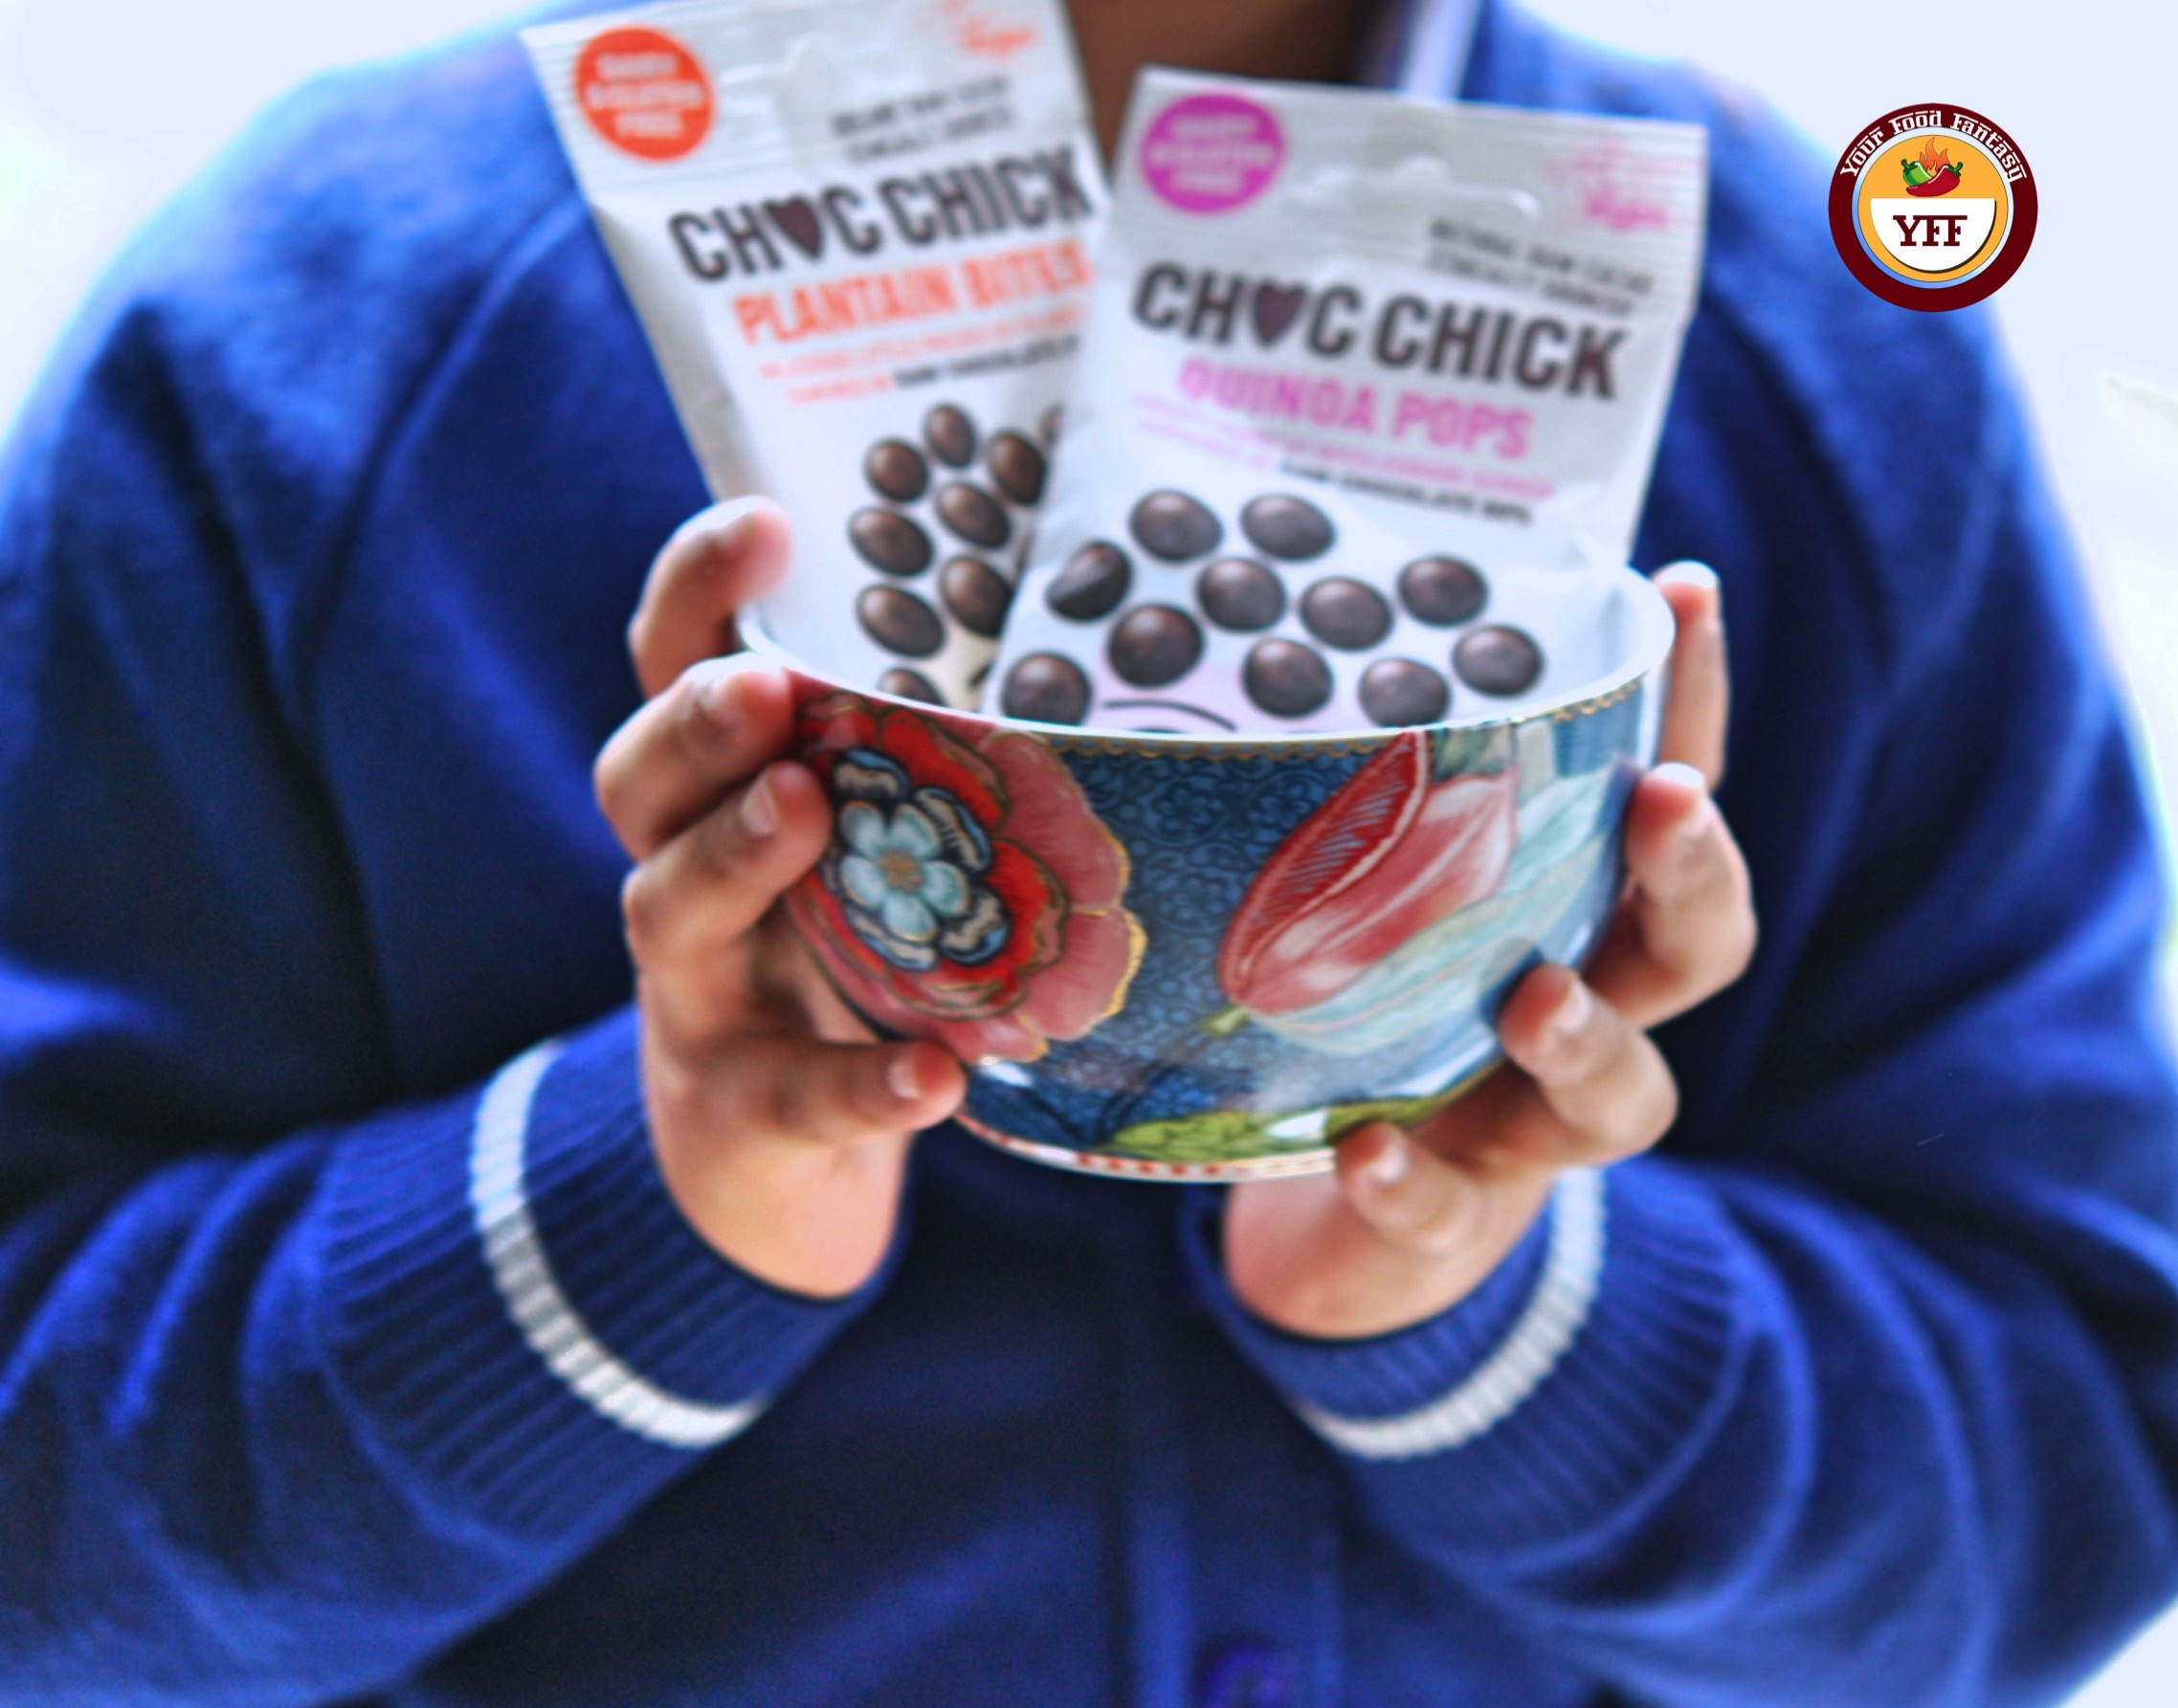 Choc Chick Quinoa and Plantian Bites review bby Your Food Fantasy